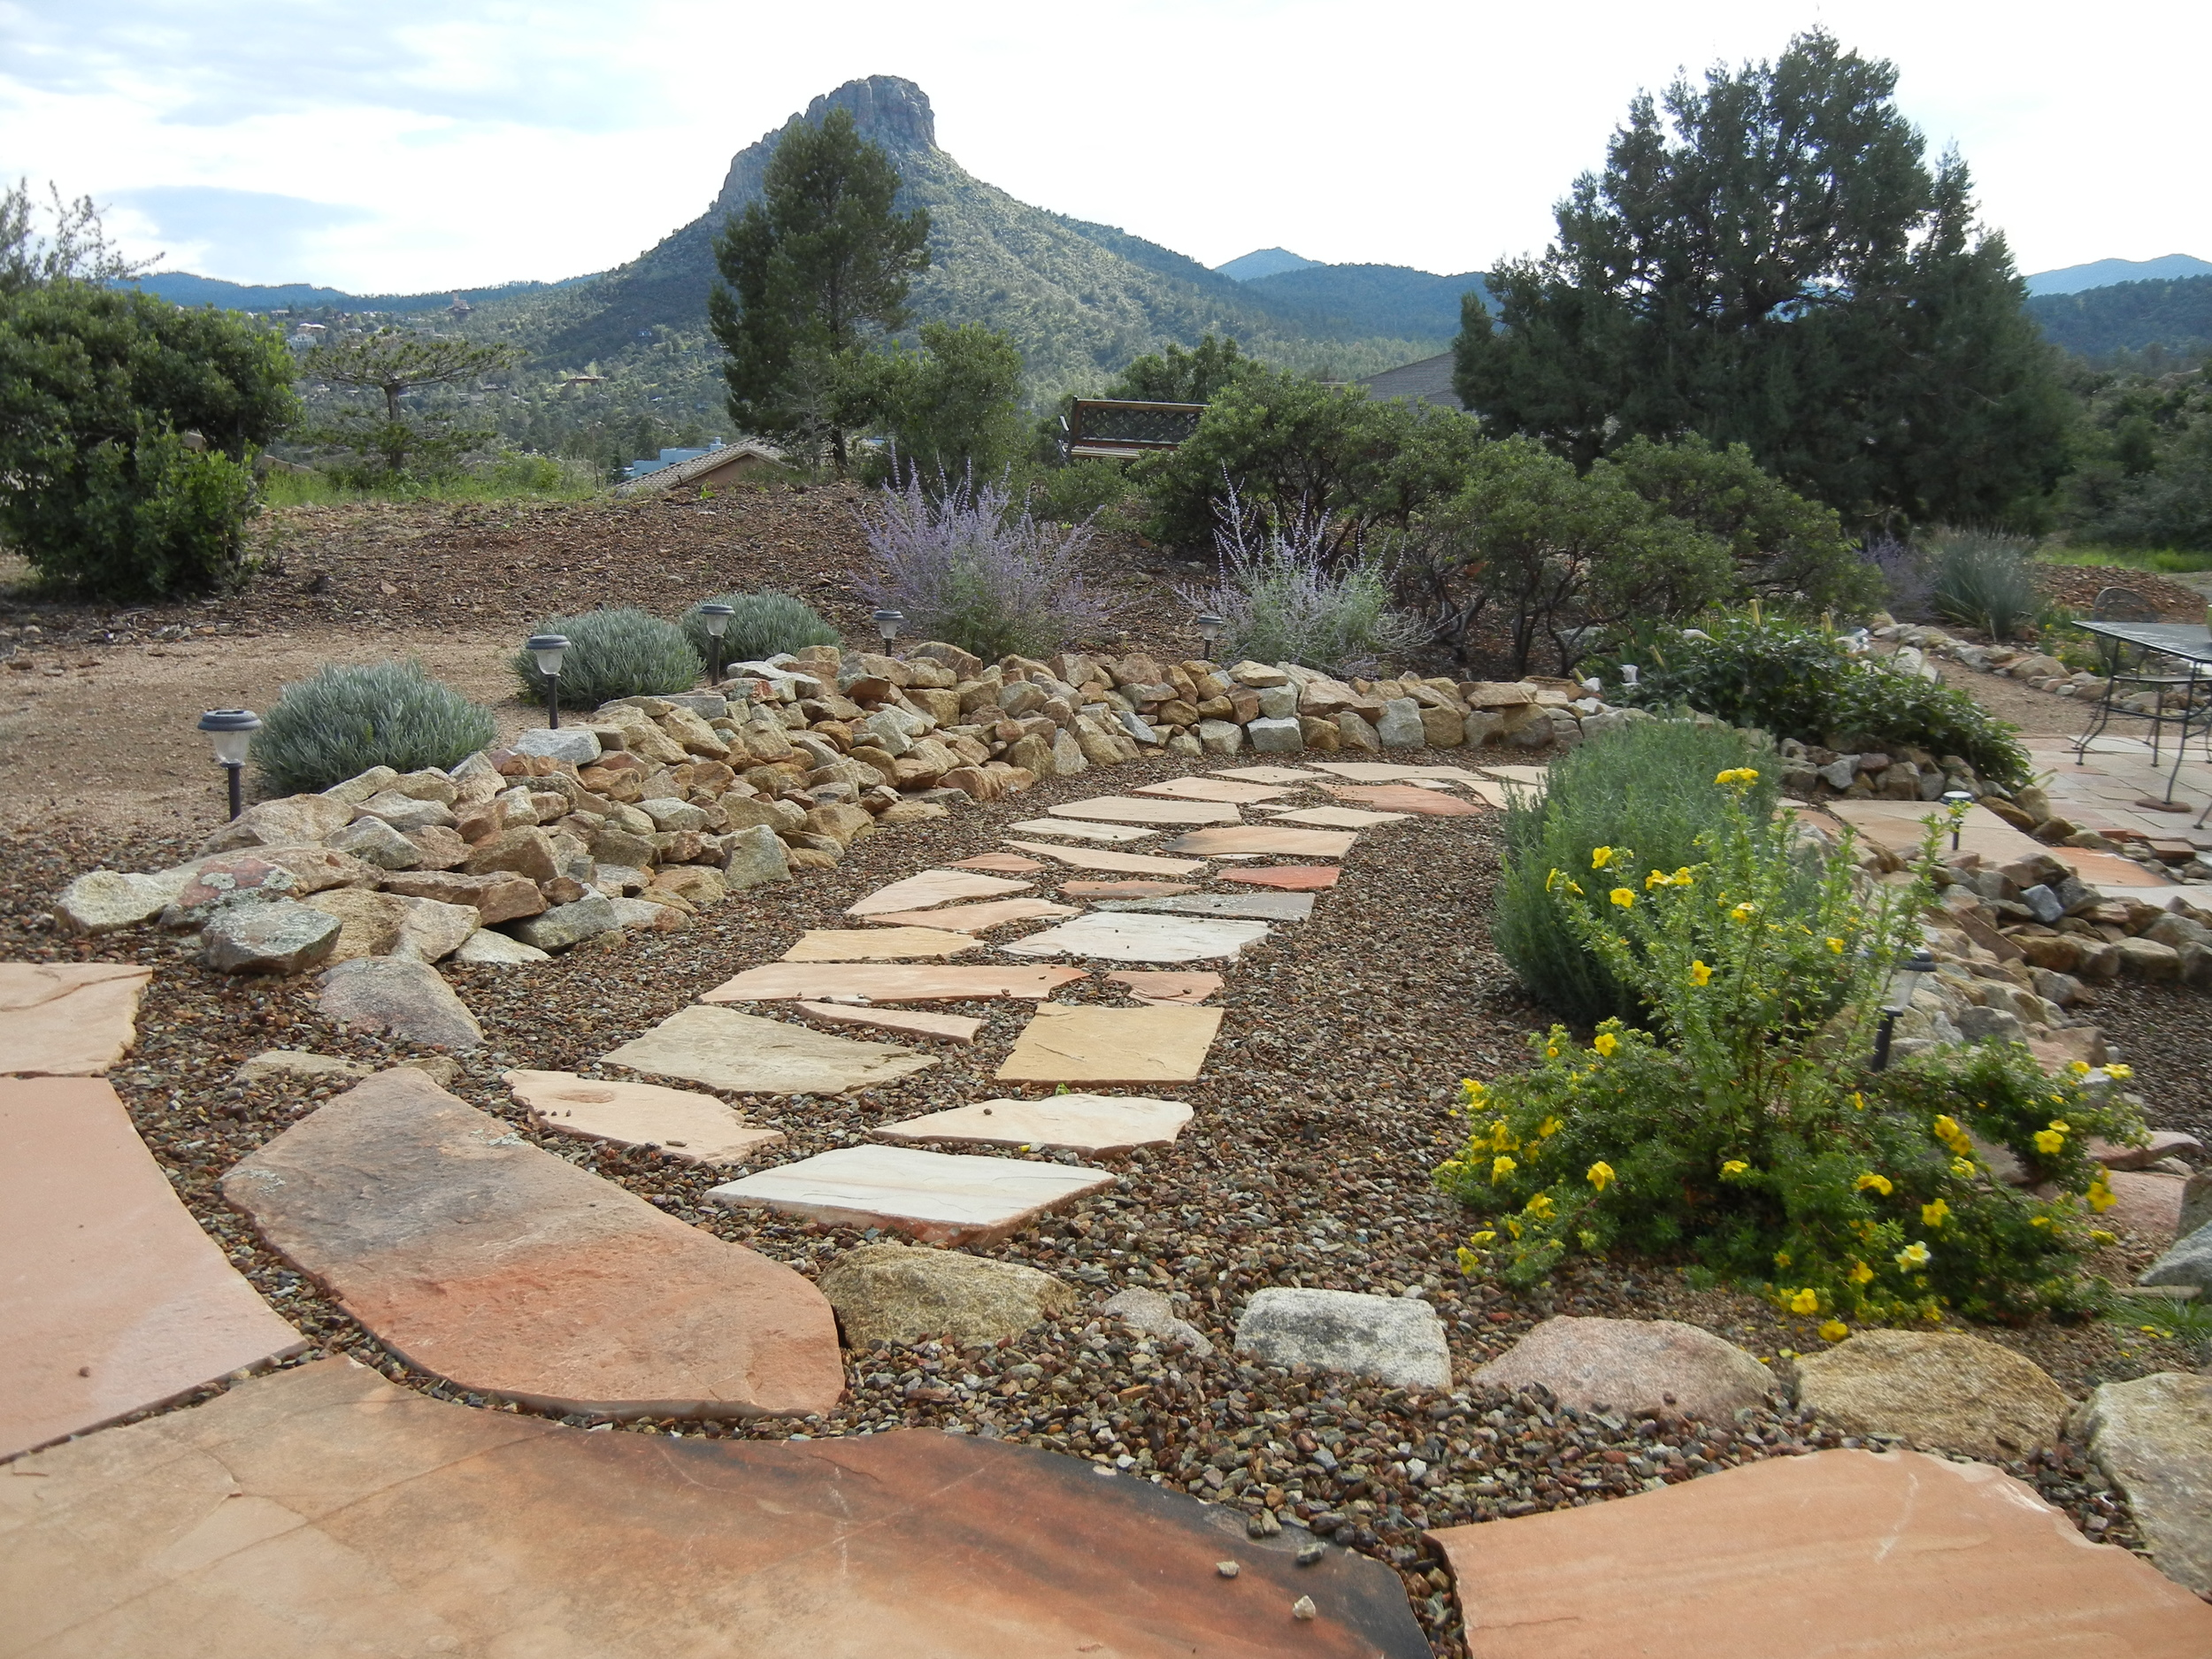 Thumb Butte looks over a flagstone walkway